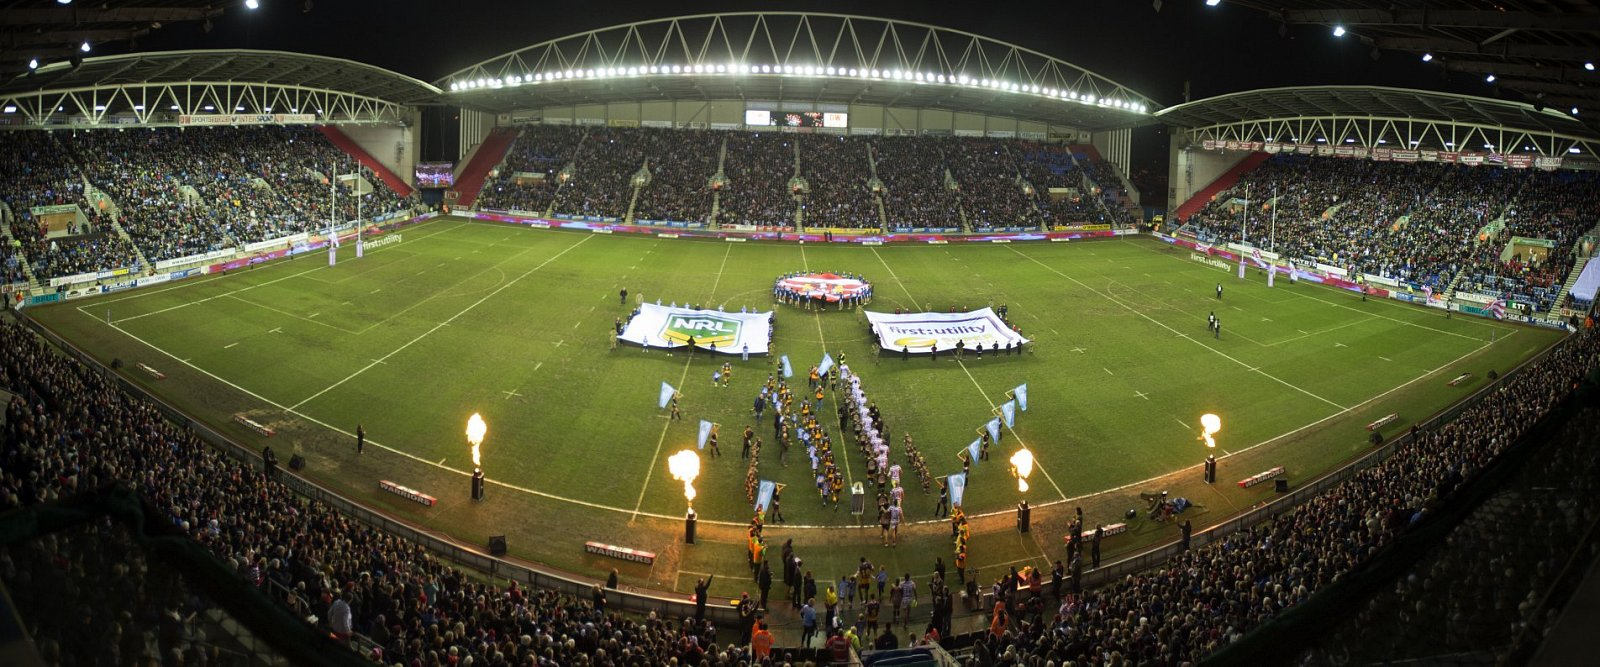 Dw stadium full night 2015